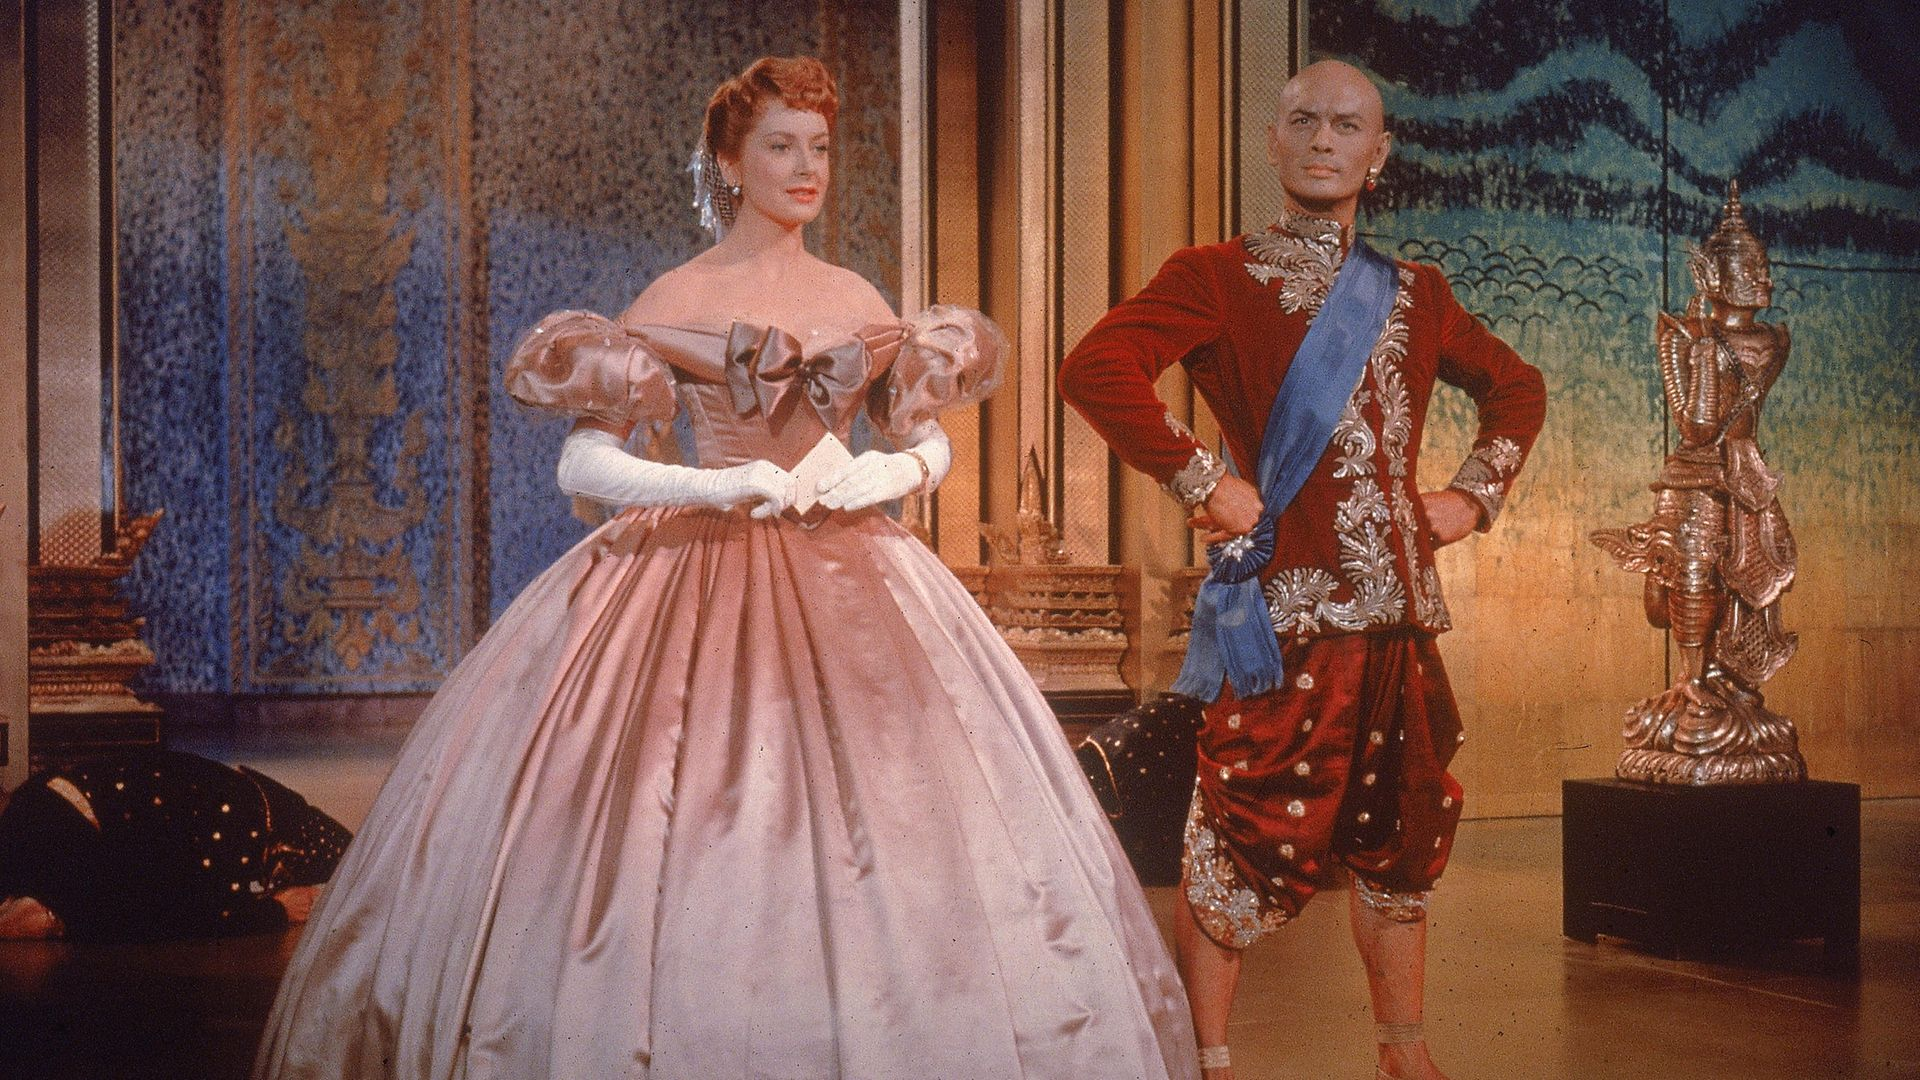 Yul Brynner, as King Mongkut, and Deborah Kerr, as Anna Leonowens, in The King and I - Credit: Getty Images